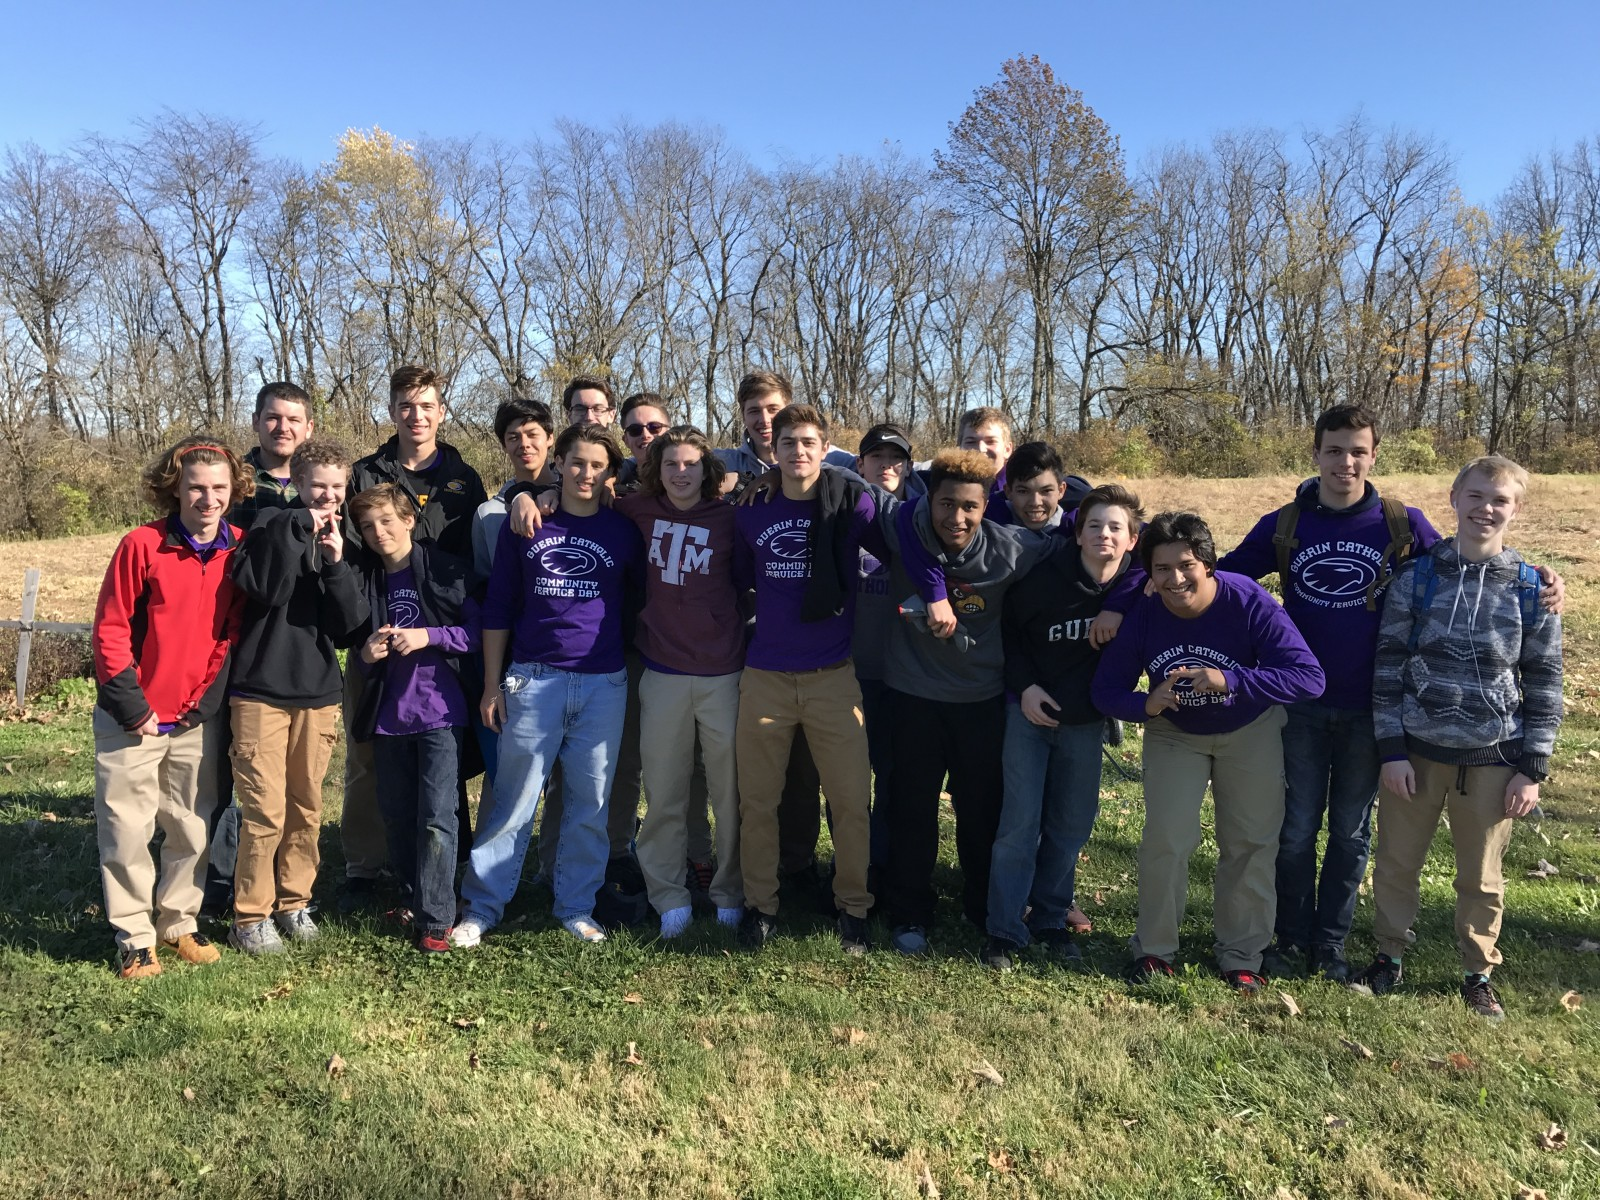 Teter Vols from Guerin Catholic